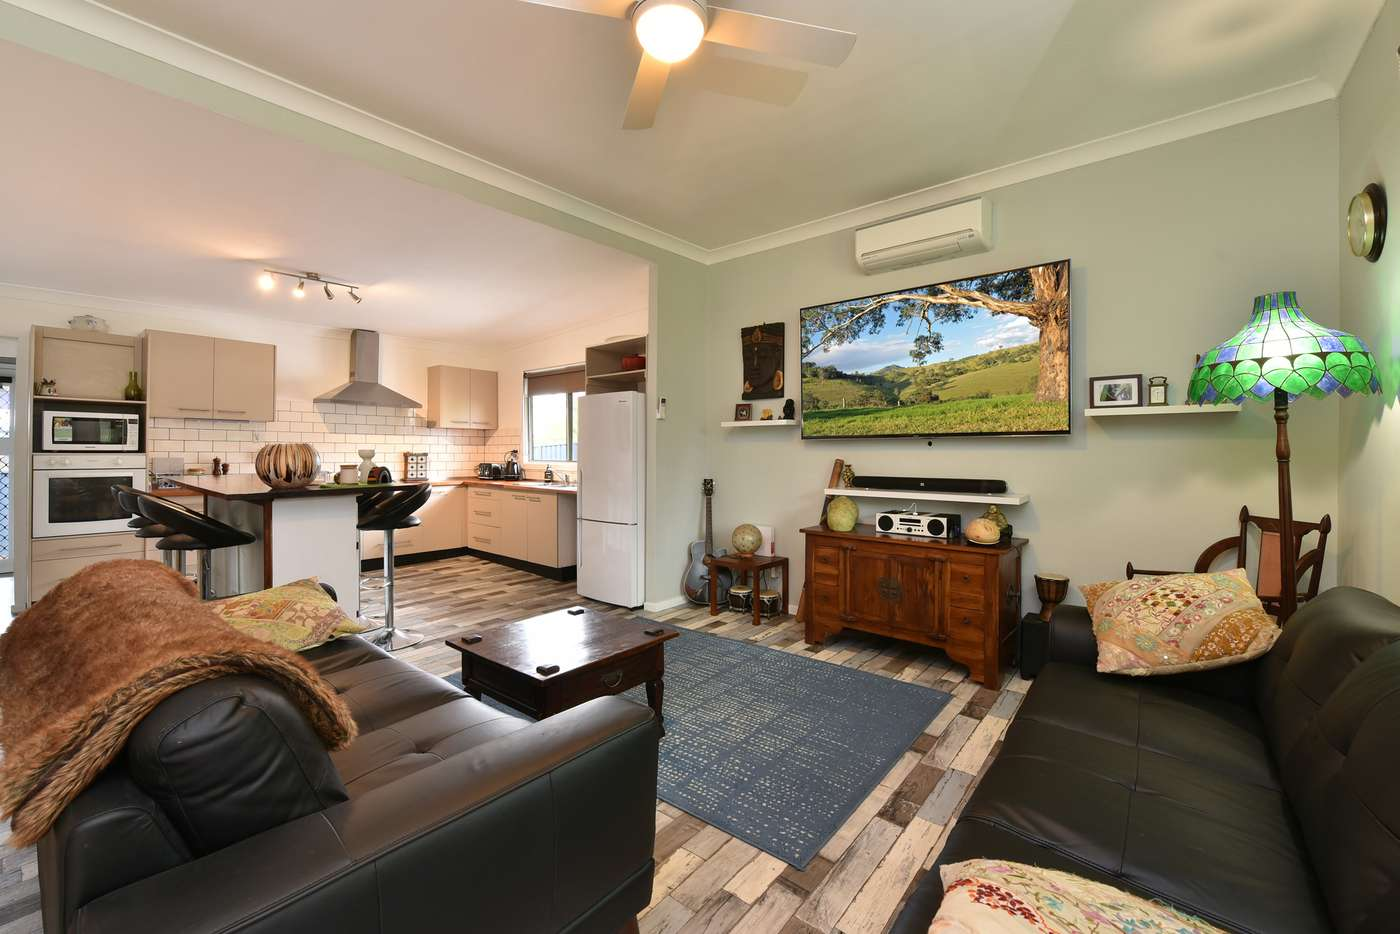 Fifth view of Homely house listing, 20 Aberdare Street, Pelaw Main NSW 2327